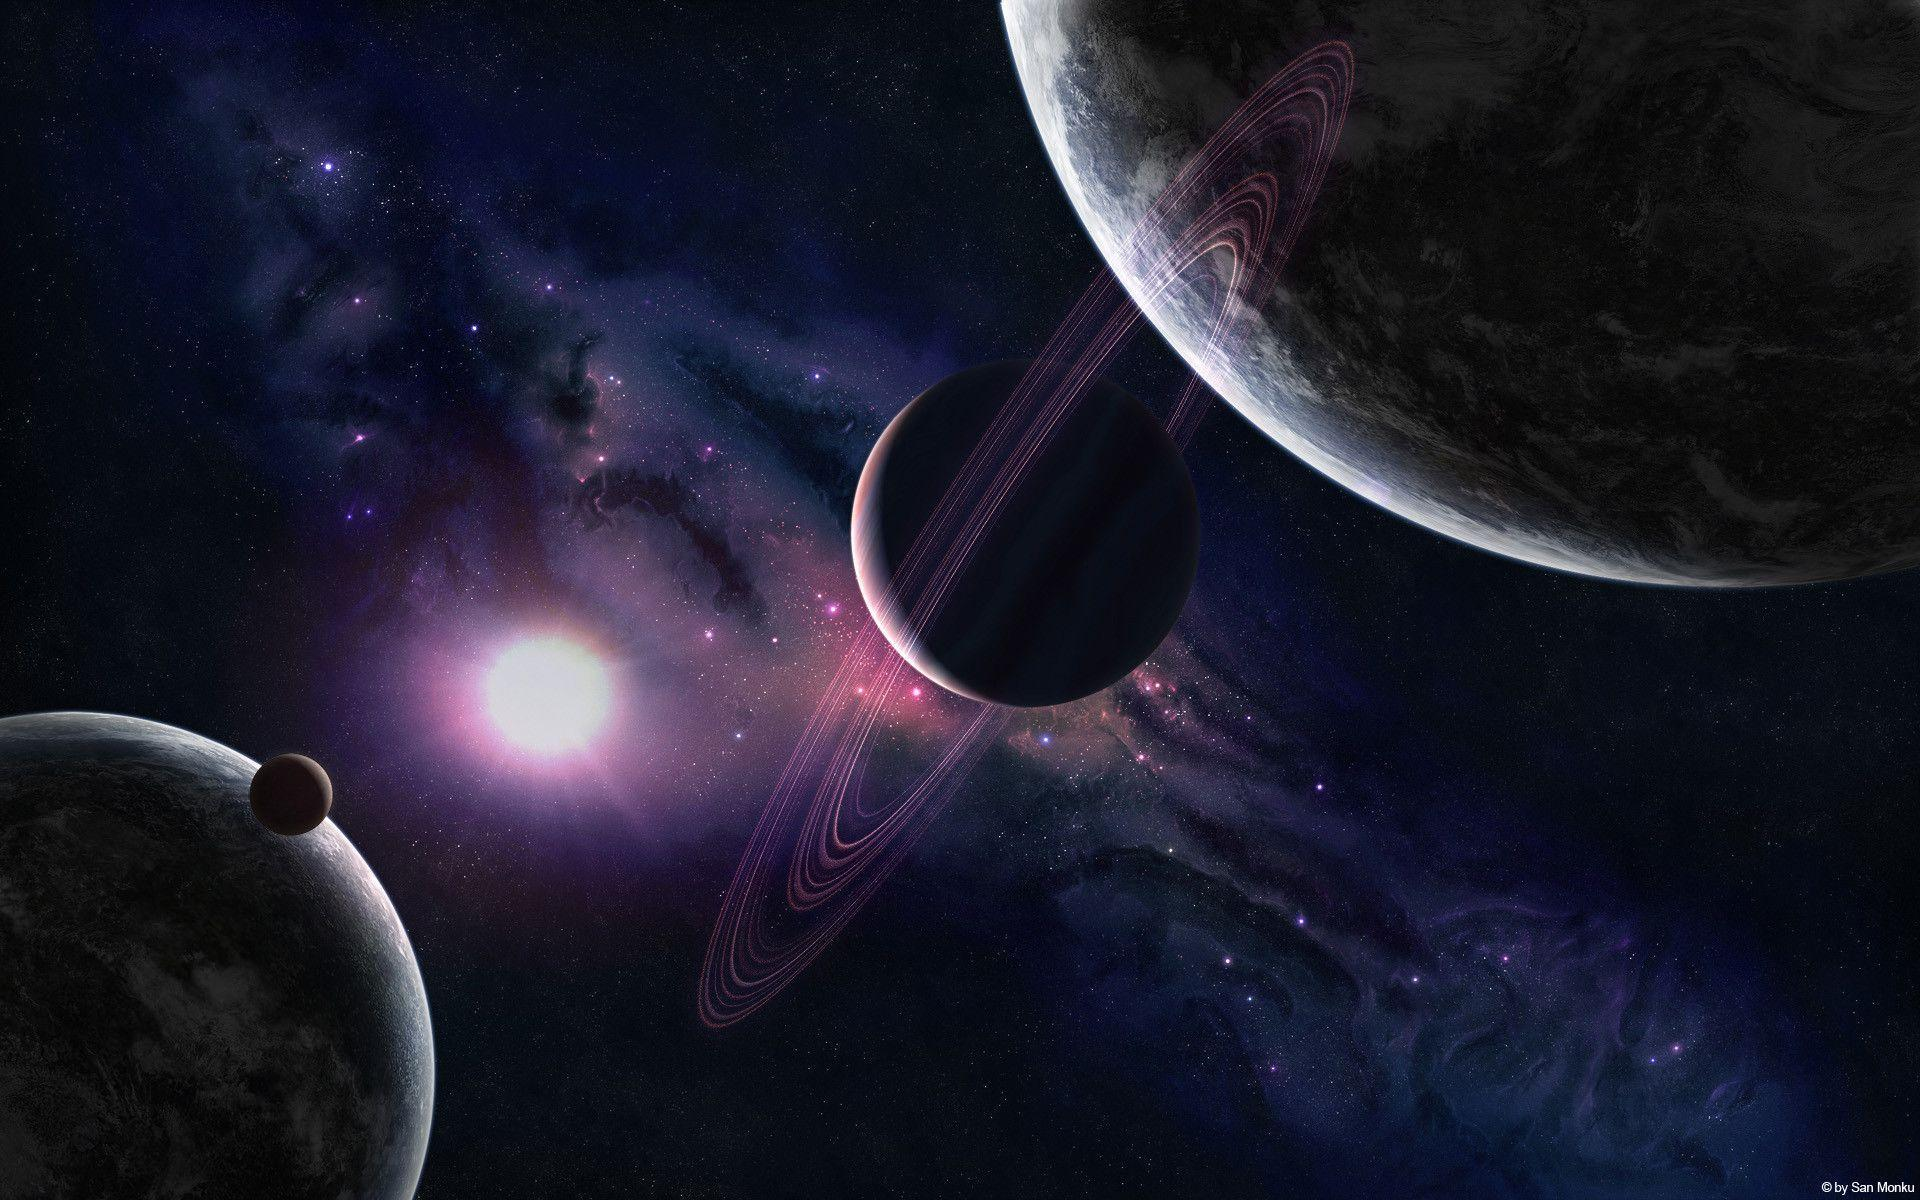 Hd Wallpapers Space Planets Hd Pictures 4 HD Wallpapers   Hdimges.